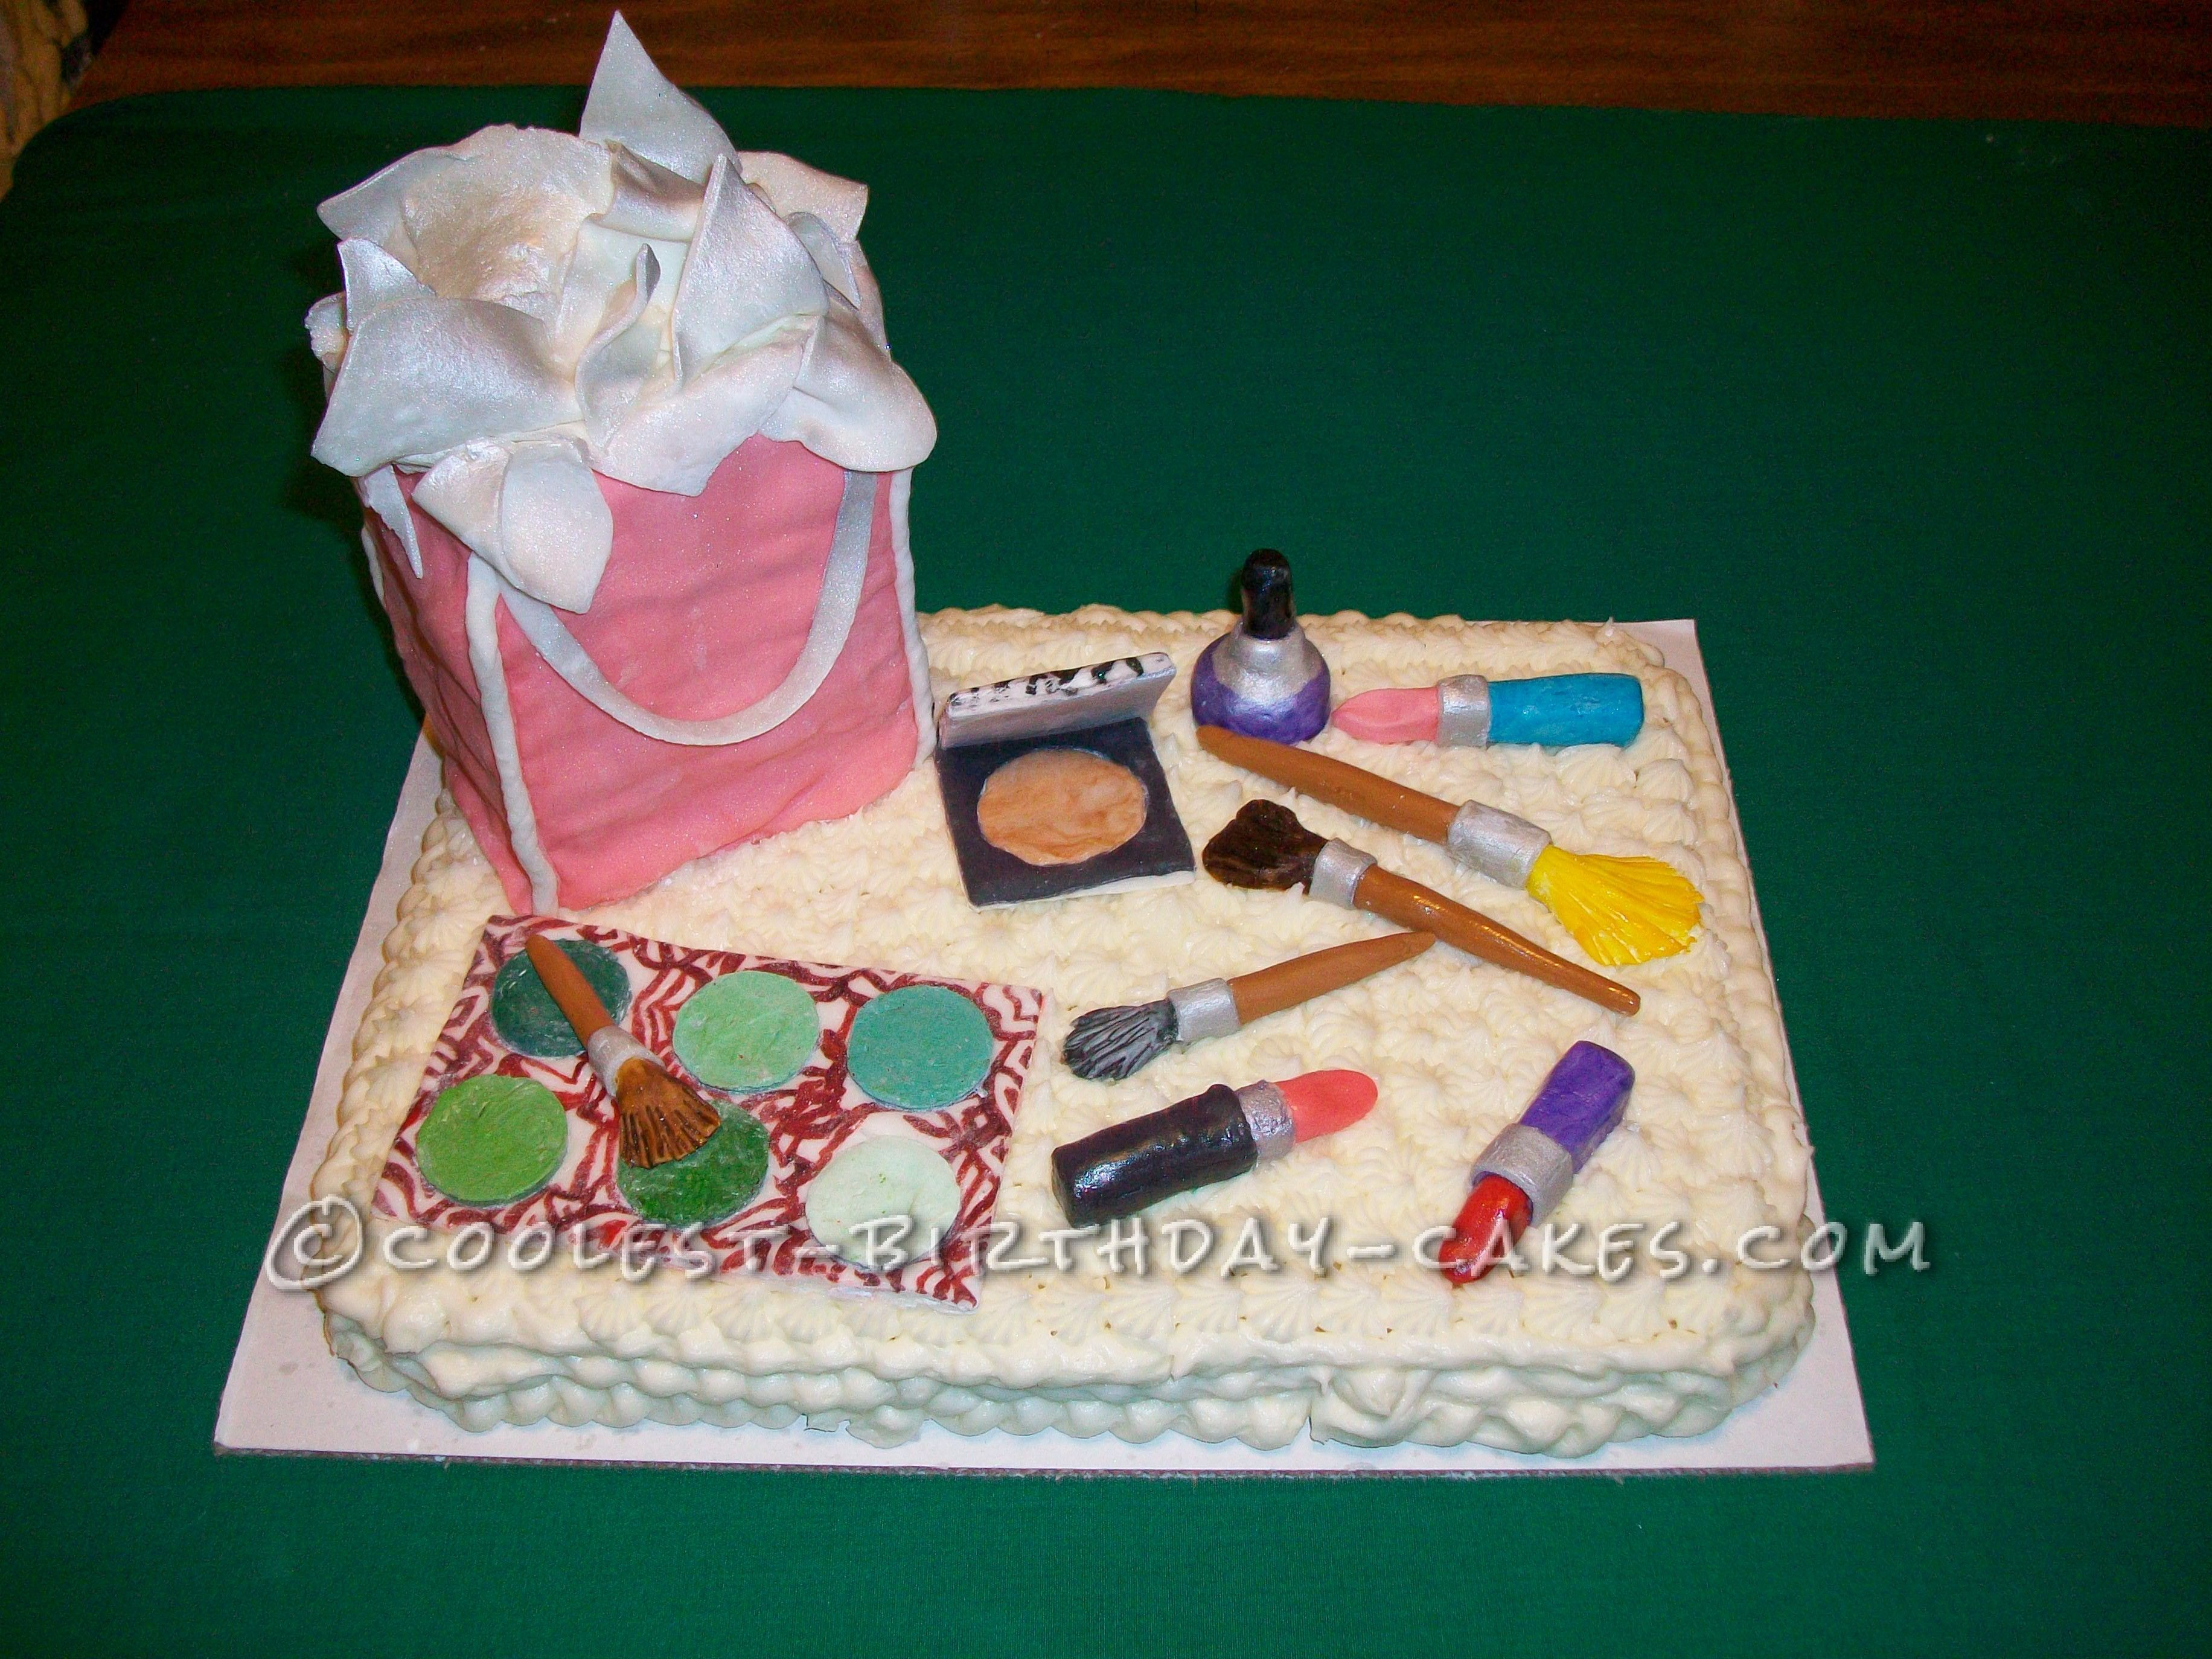 Coolest Make Up Cake For 13 Year Old Girl This Website Is The Pinterest Of Birthday Ideas